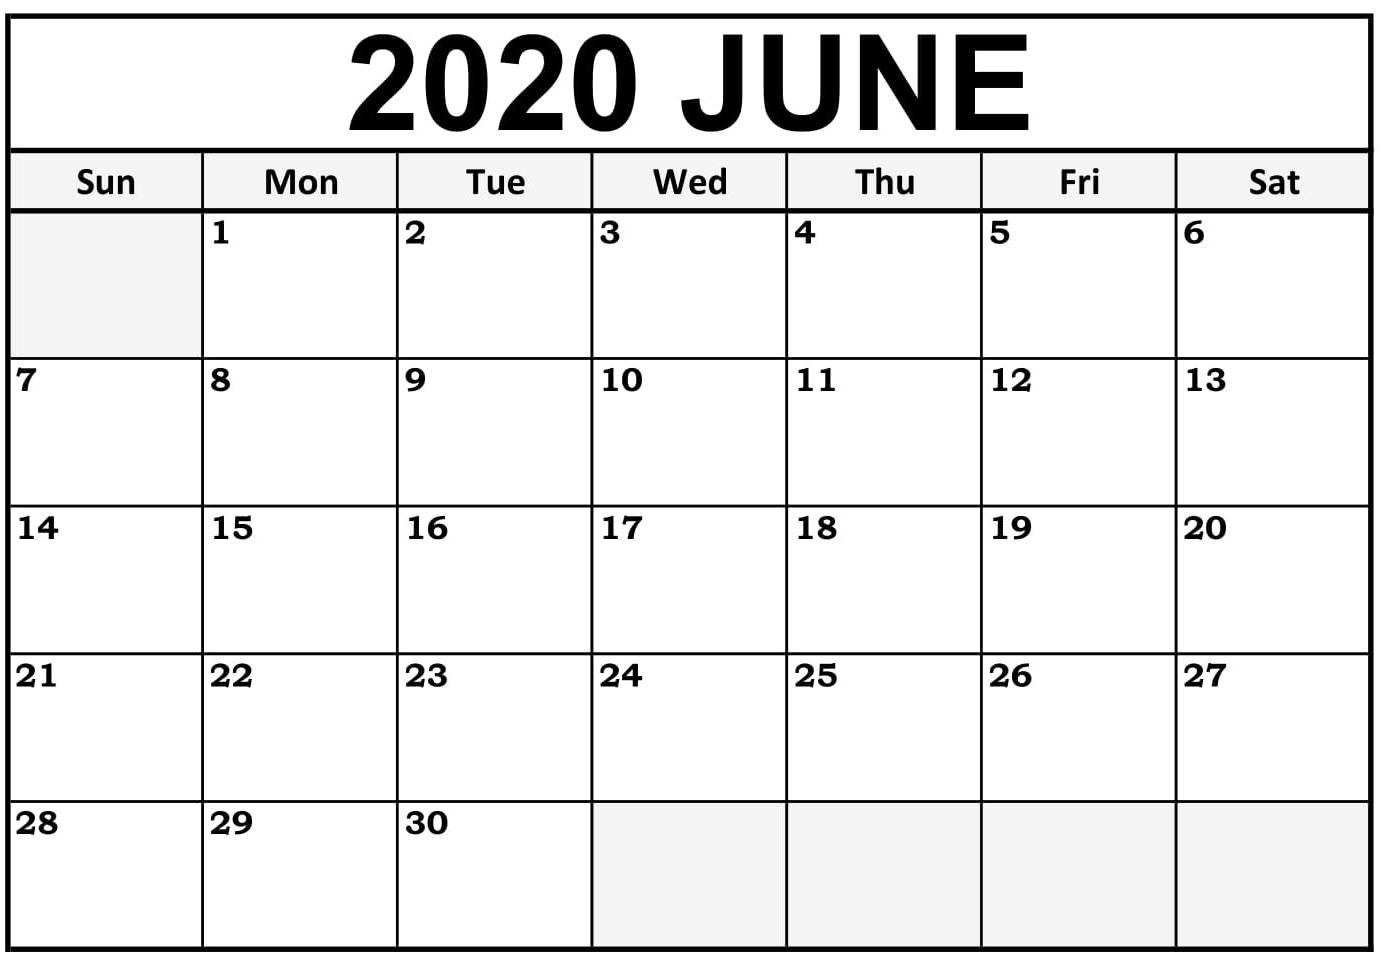 June 2020 Printable Calendar Free Waterproof - Free for Free Printable Calendar 2020 Waterproof